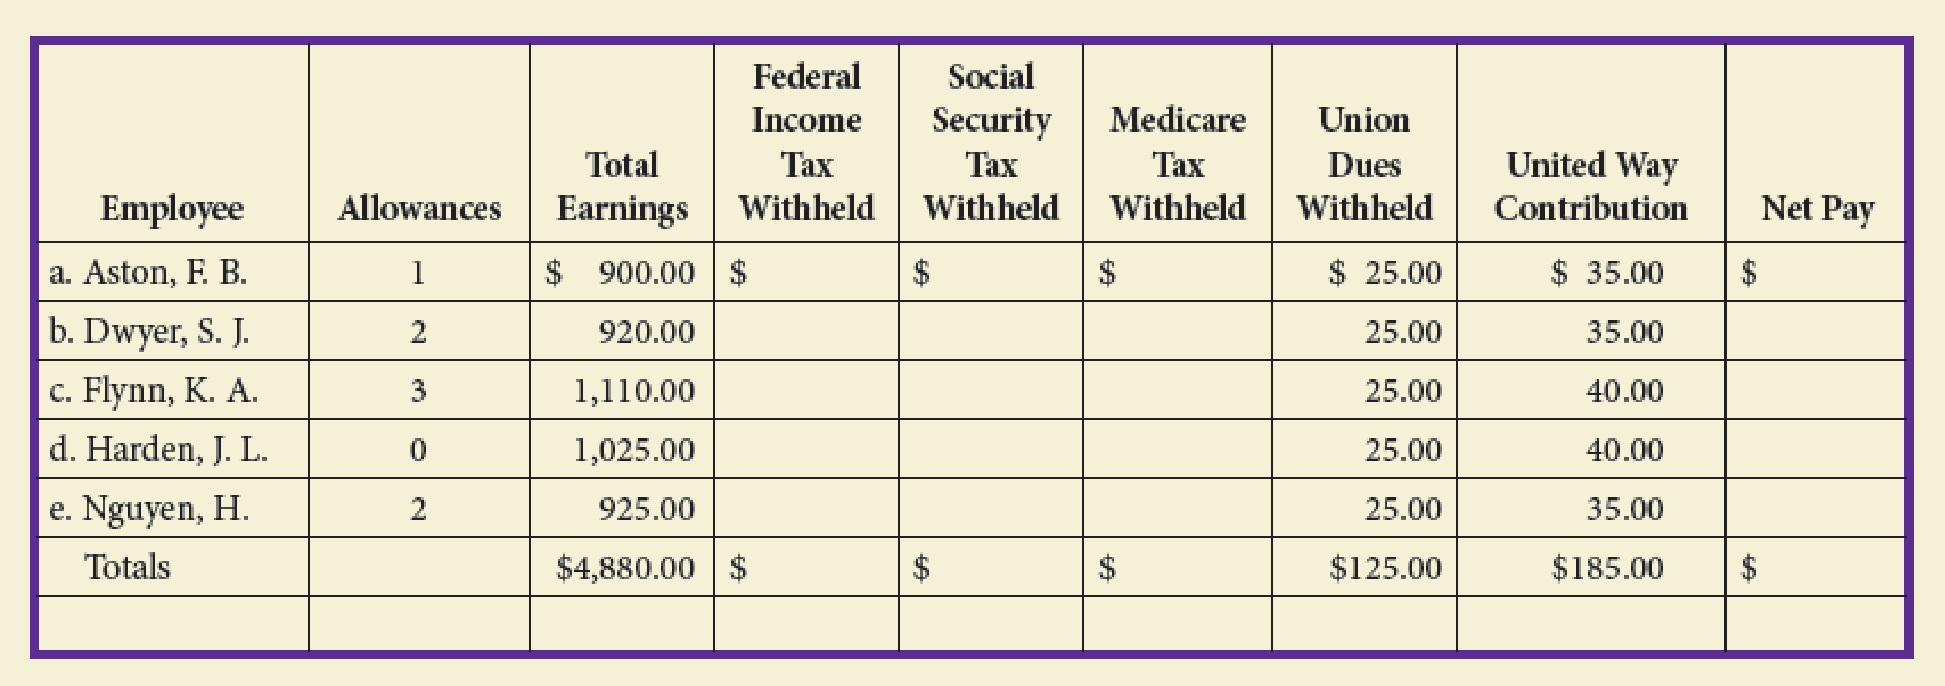 Chapter 7, Problem 3E, Using the income tax withholding table in Figure 3, pages 331332, for each employee of Miller